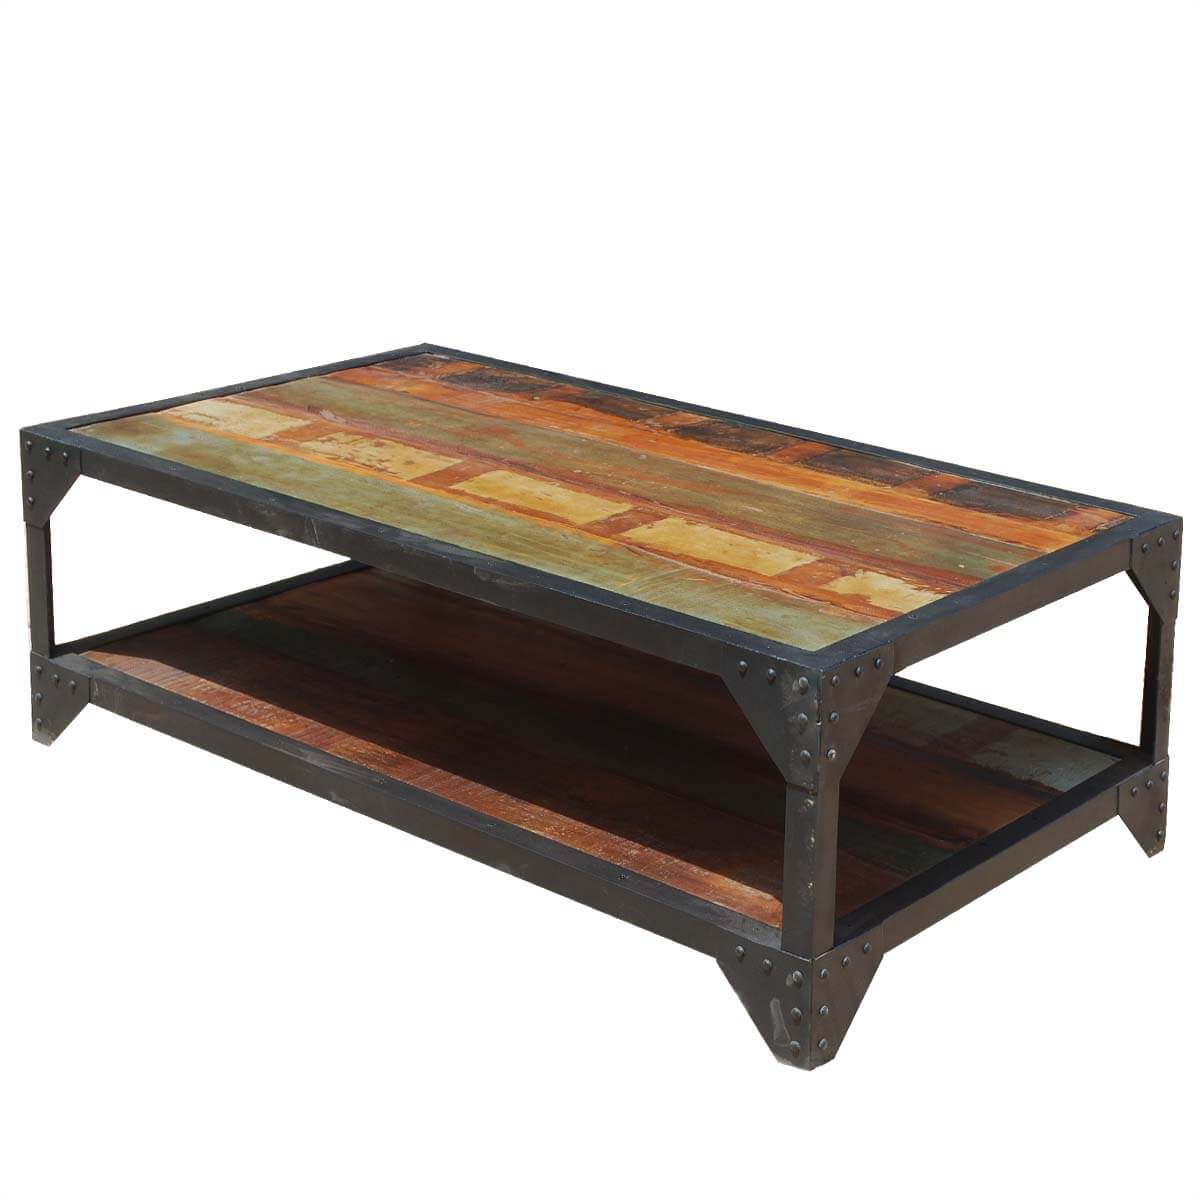 Industrial wrought iron reclaimed wood 2 tier coffee table Recycled wood coffee table